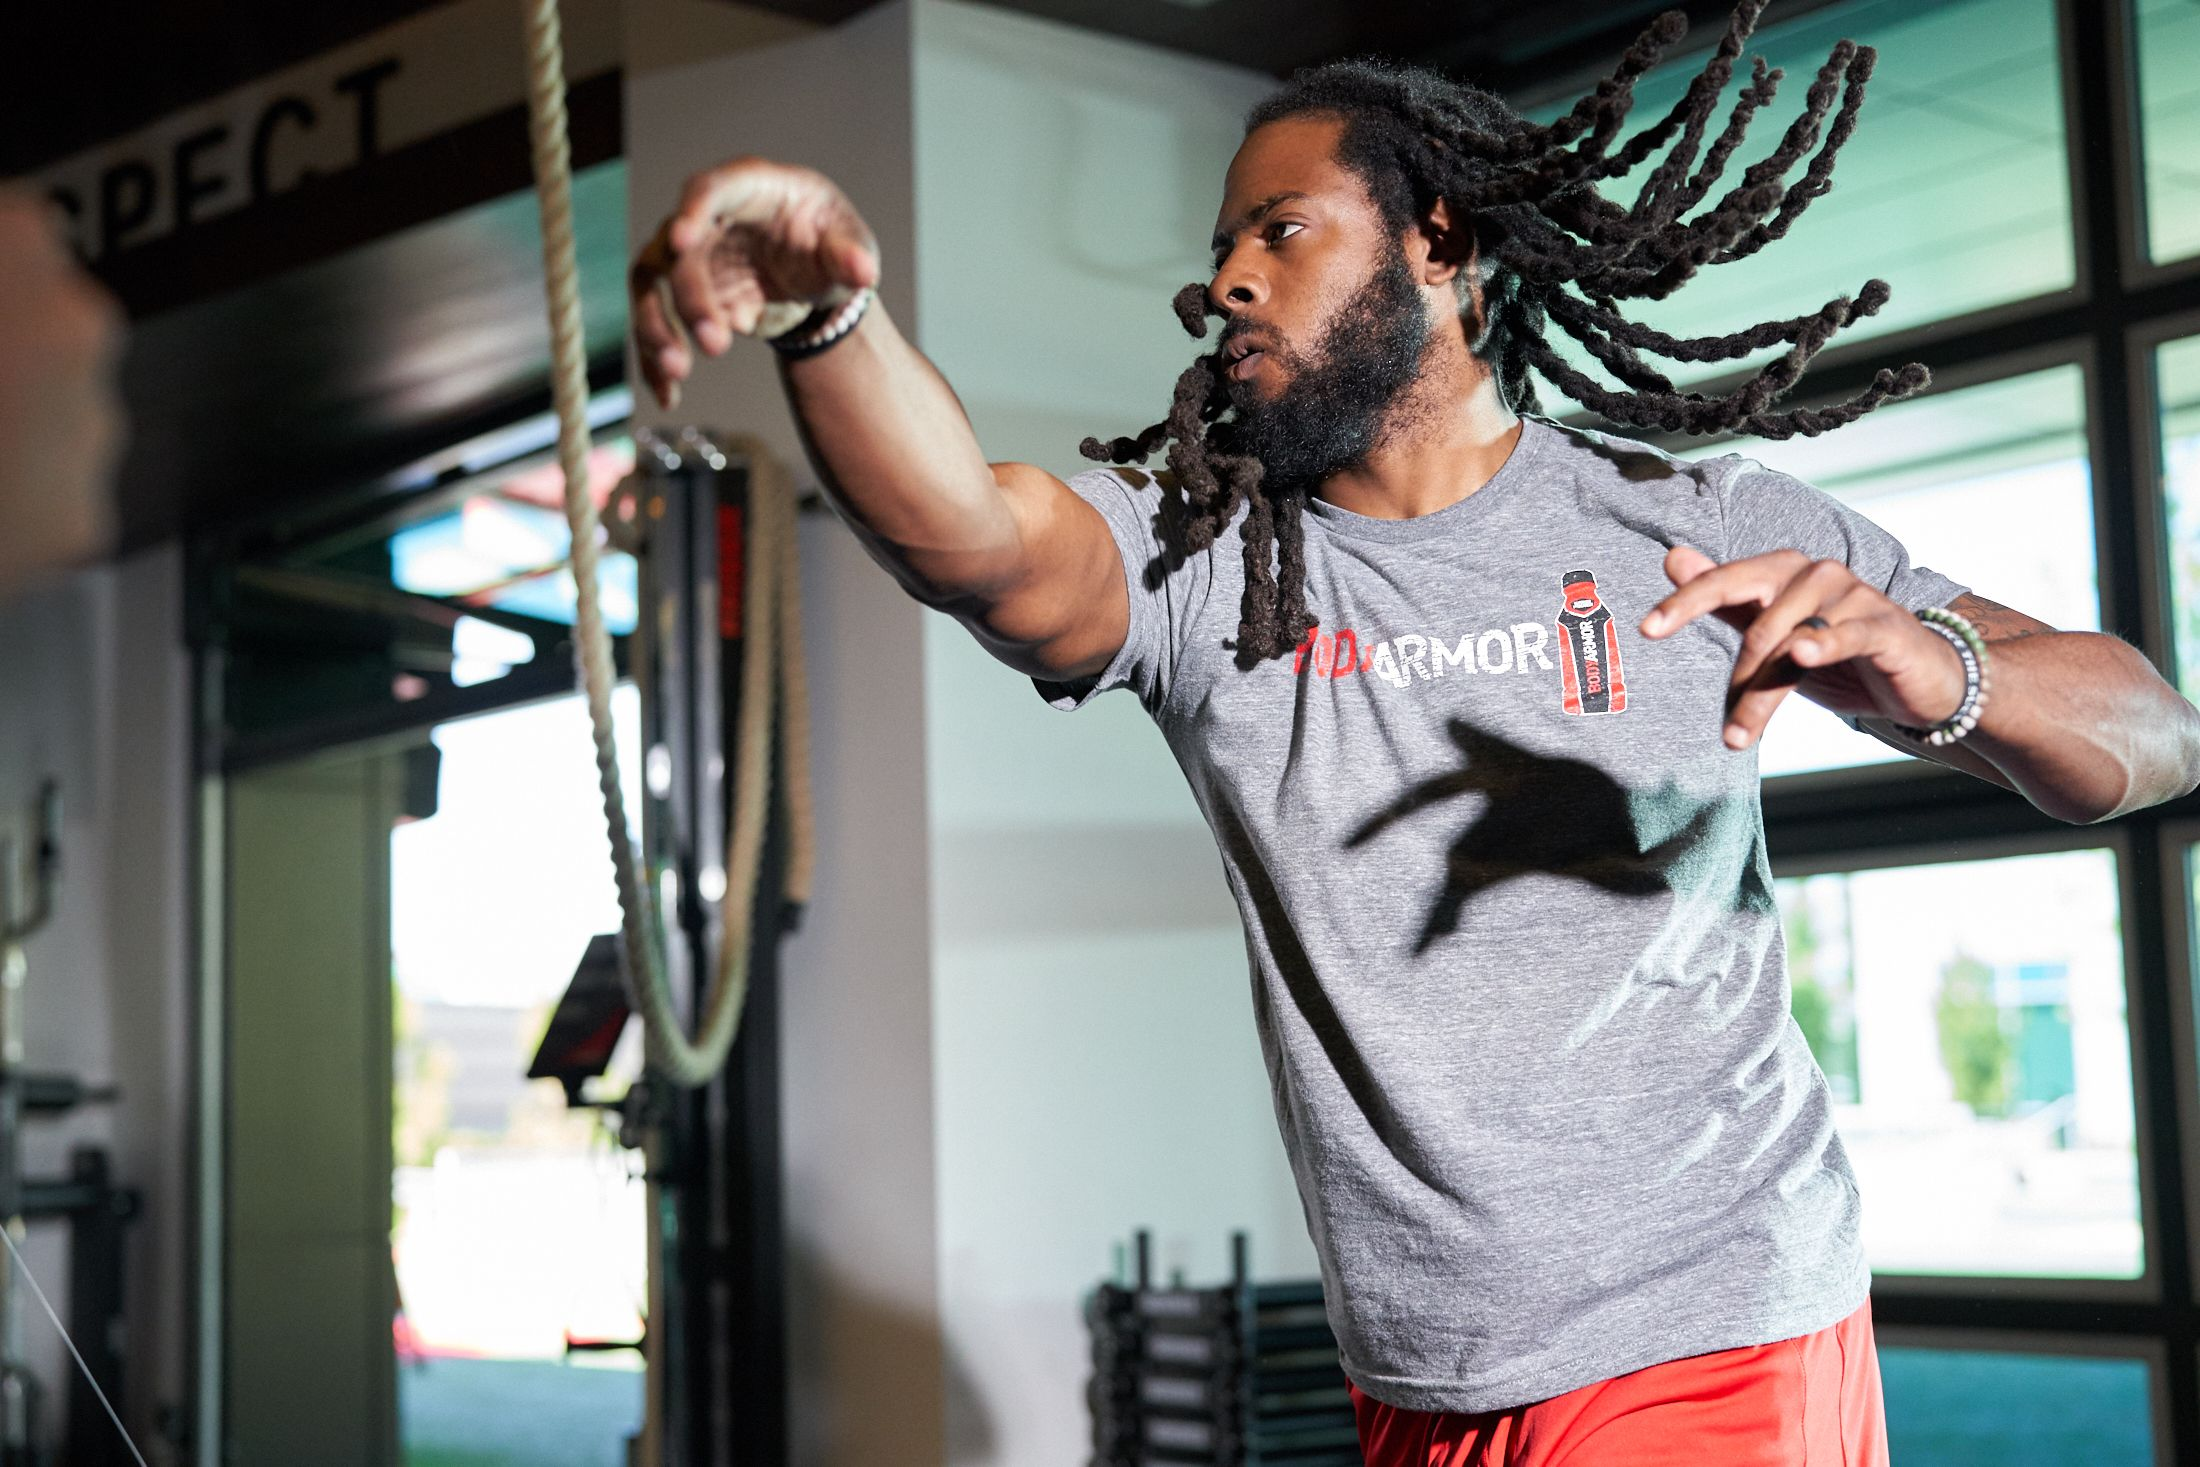 The 5 Exercises That Get Richard Sherman Through the NFL Offseason